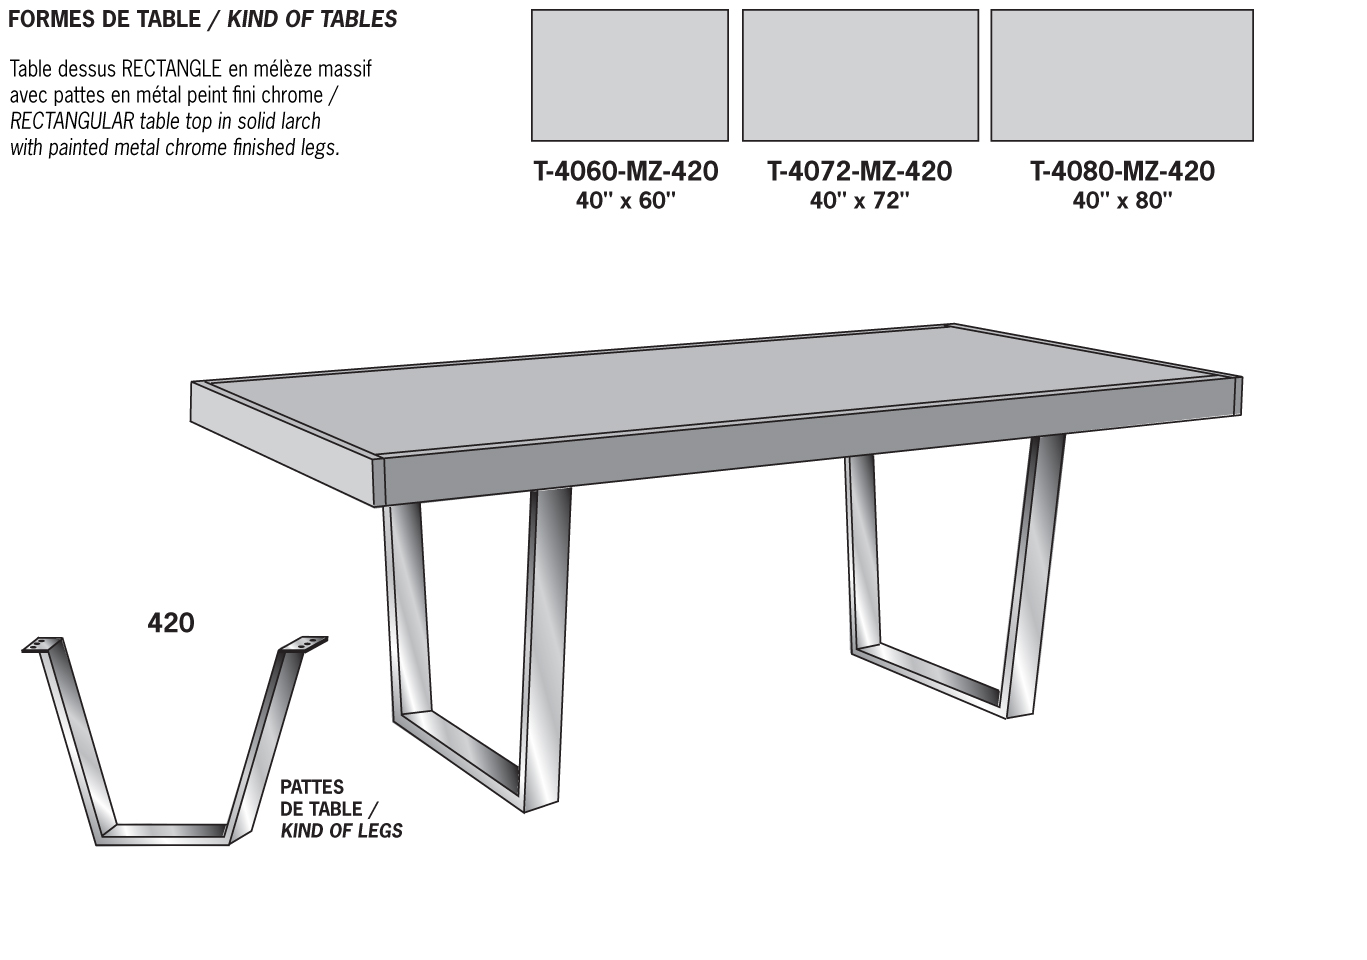 Viebois catalogue rustica salles manger - Table de dessin ikea ...